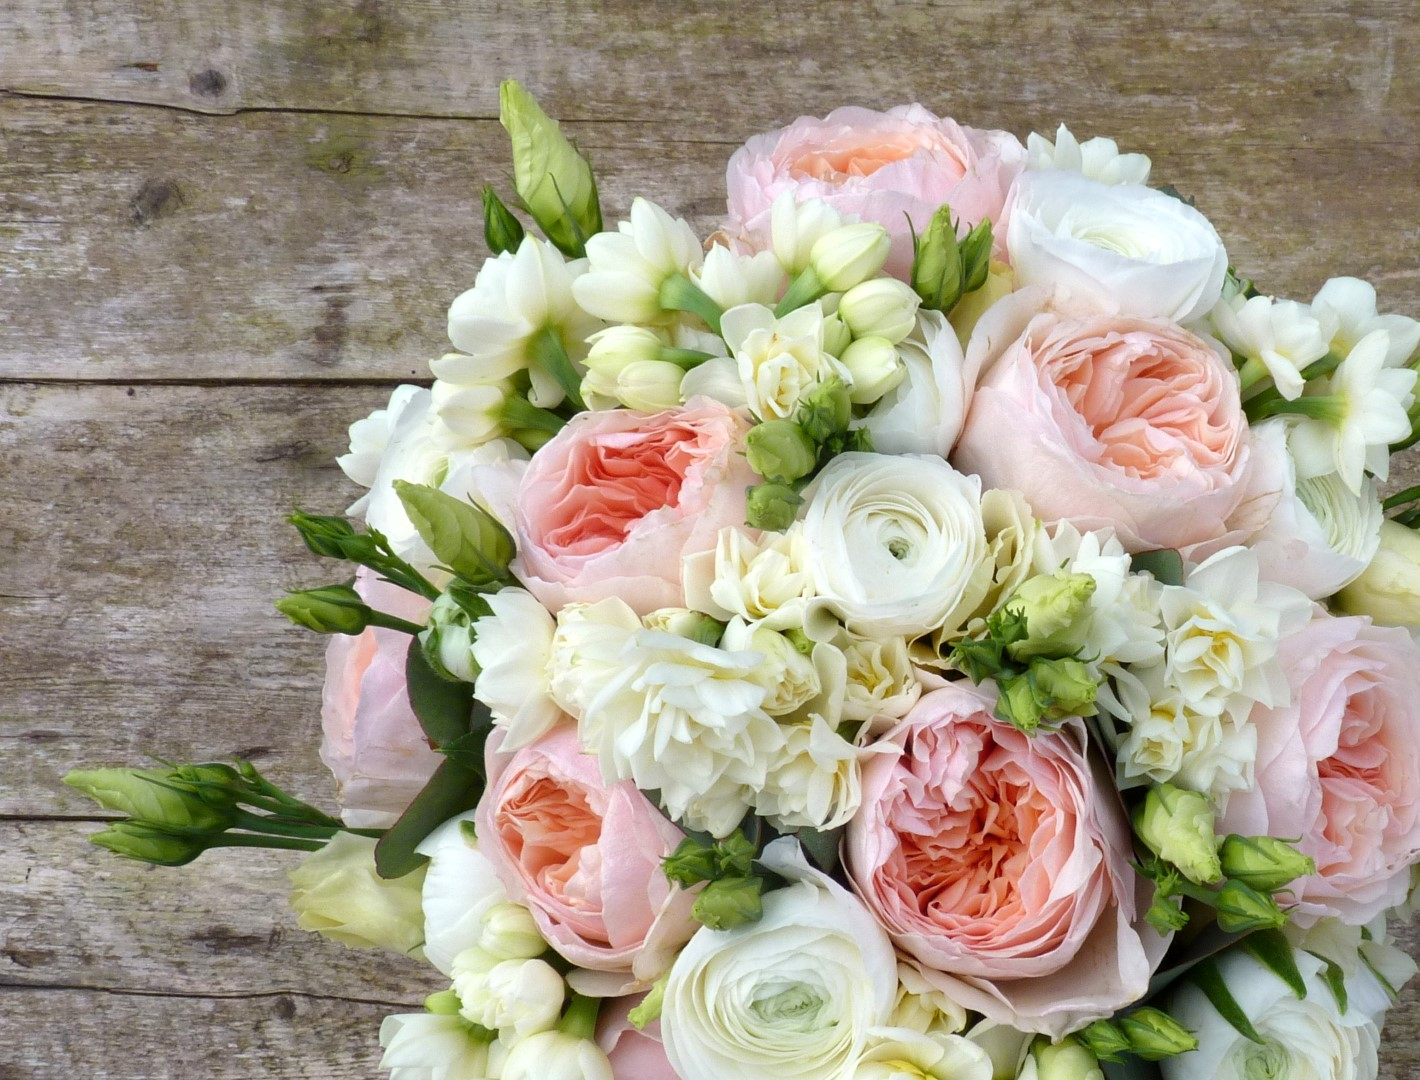 weddings-flowers-pictures-of-easter-wedding-flowers-huntsham-court-at-wedding-flowers (Large)